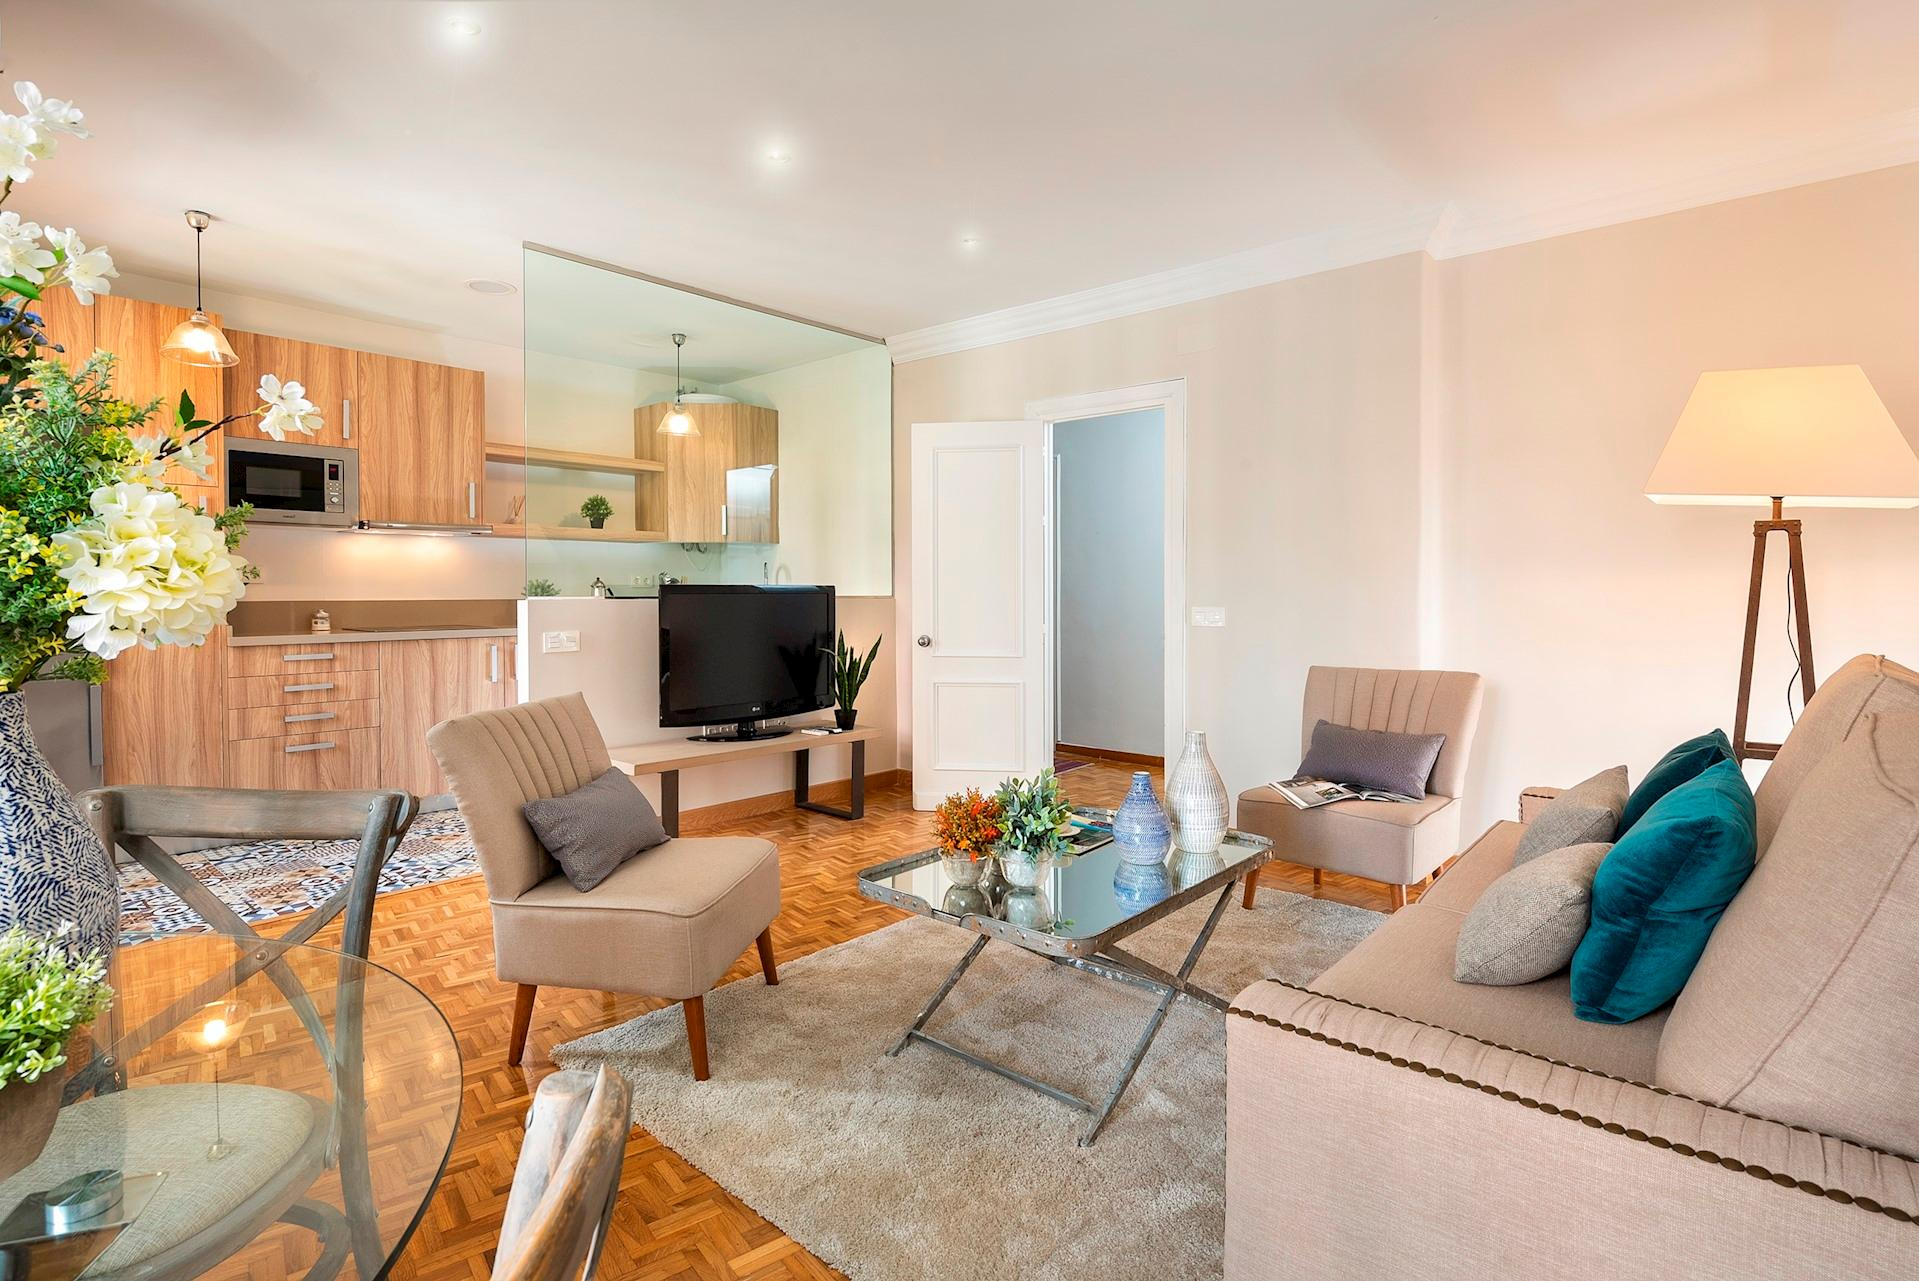 Property Image 2 - Lovely, Bright, Two-Bedroom Apartment in Soho District